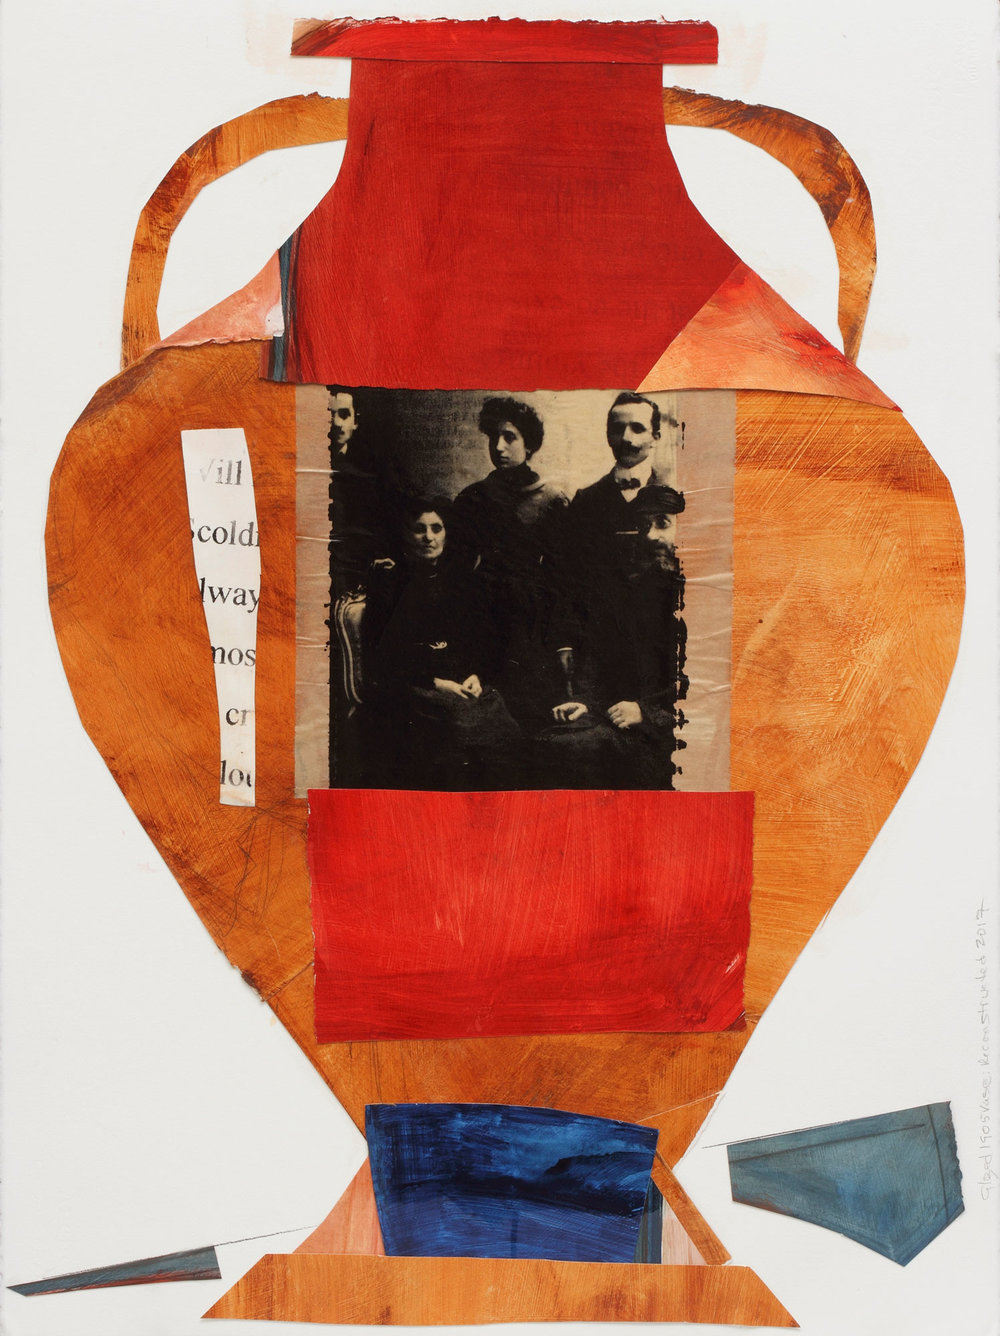 "Urn, Family Remains, Collage on Arches with Screen Print, 20"" x 24"", 2017"